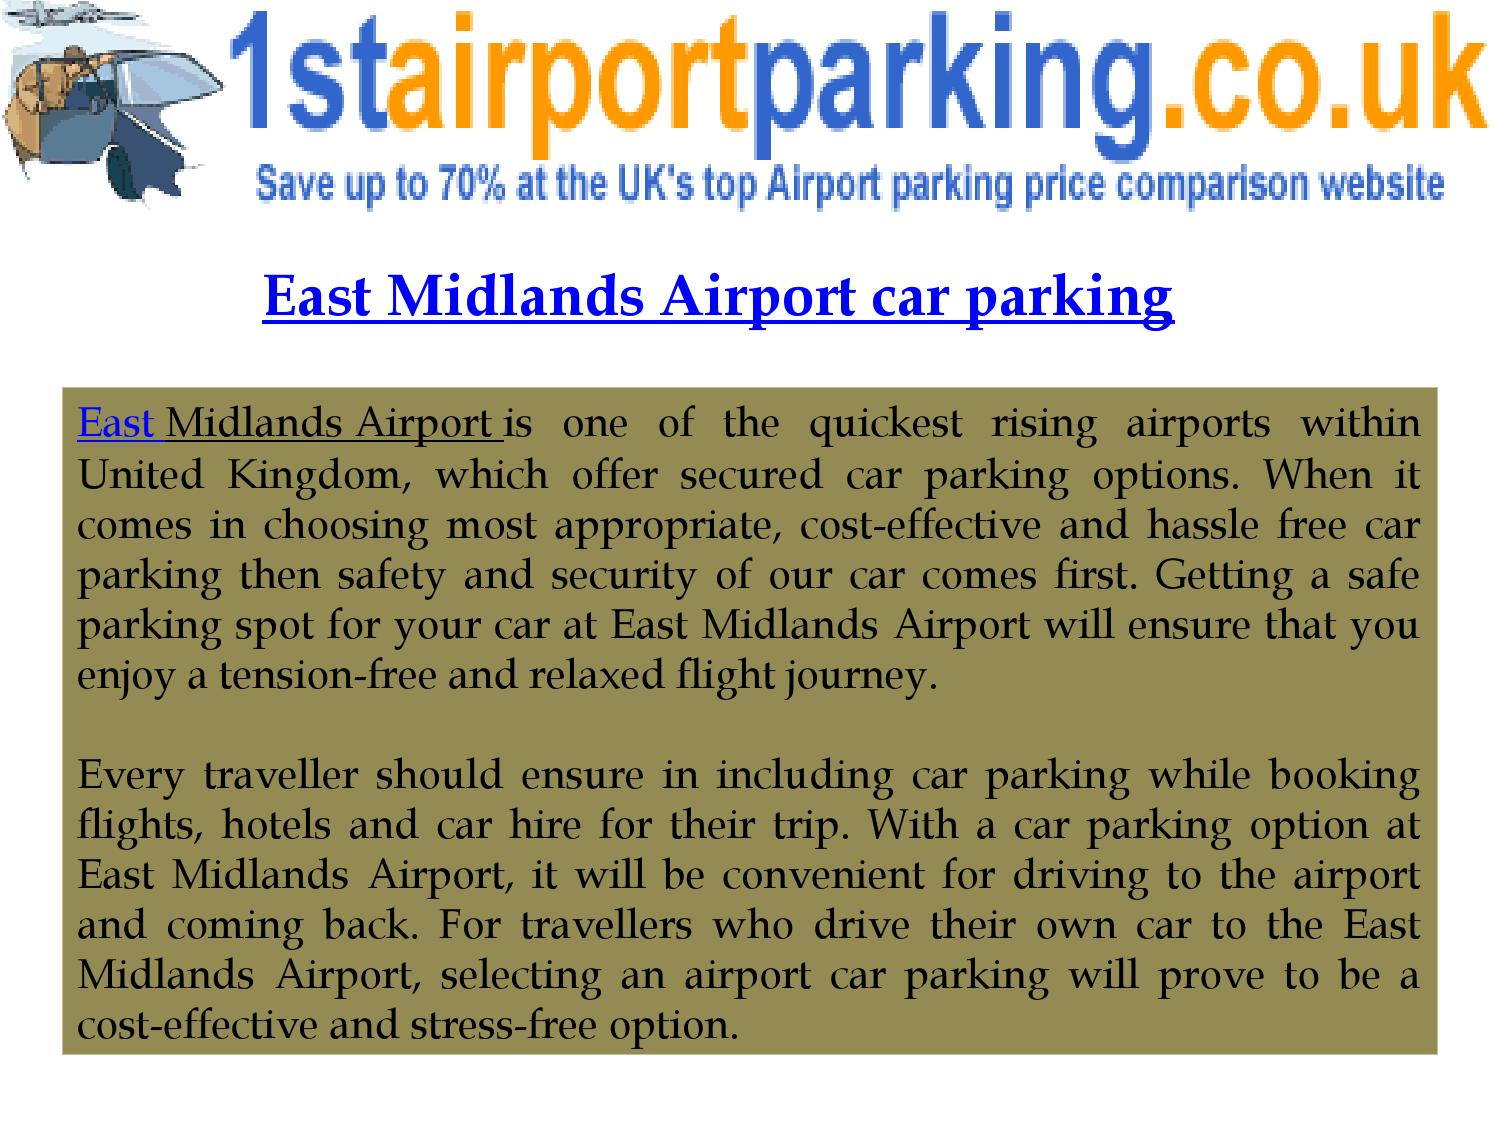 East Midlands Airport Car Parking By 1st Airport Parking Issuu